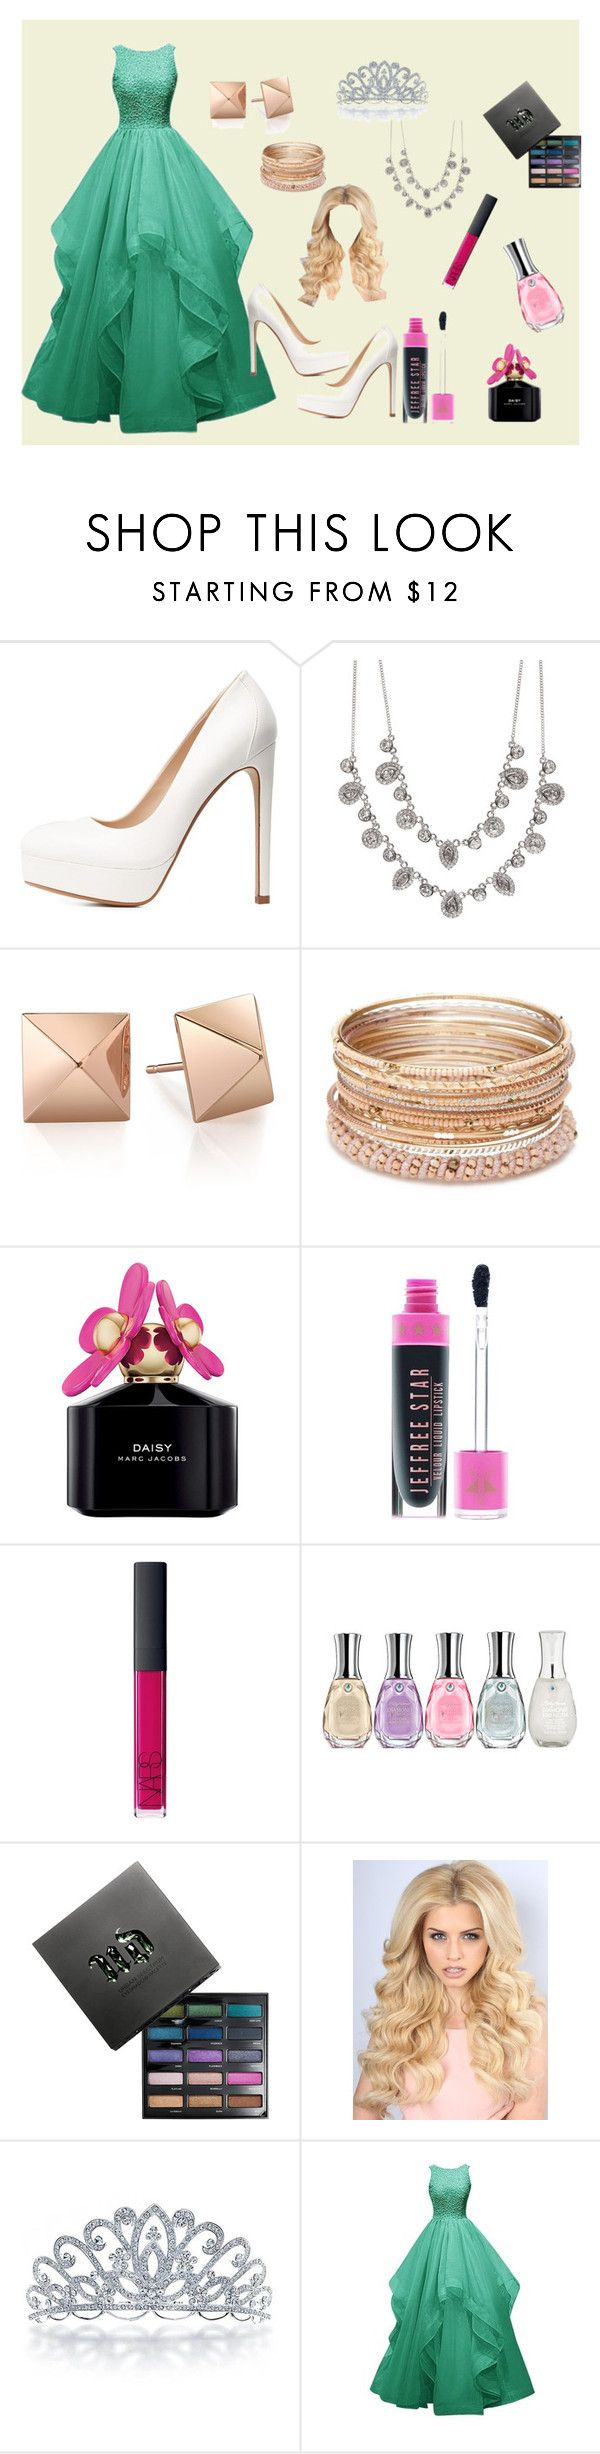 """entrega de Oscars"" by paulapirez ❤ liked on Polyvore featuring Charlotte Russe, Givenchy, Red Camel, Marc Jacobs, NARS Cosmetics, Sally Hansen, Urban Decay and Bling Jewelry"